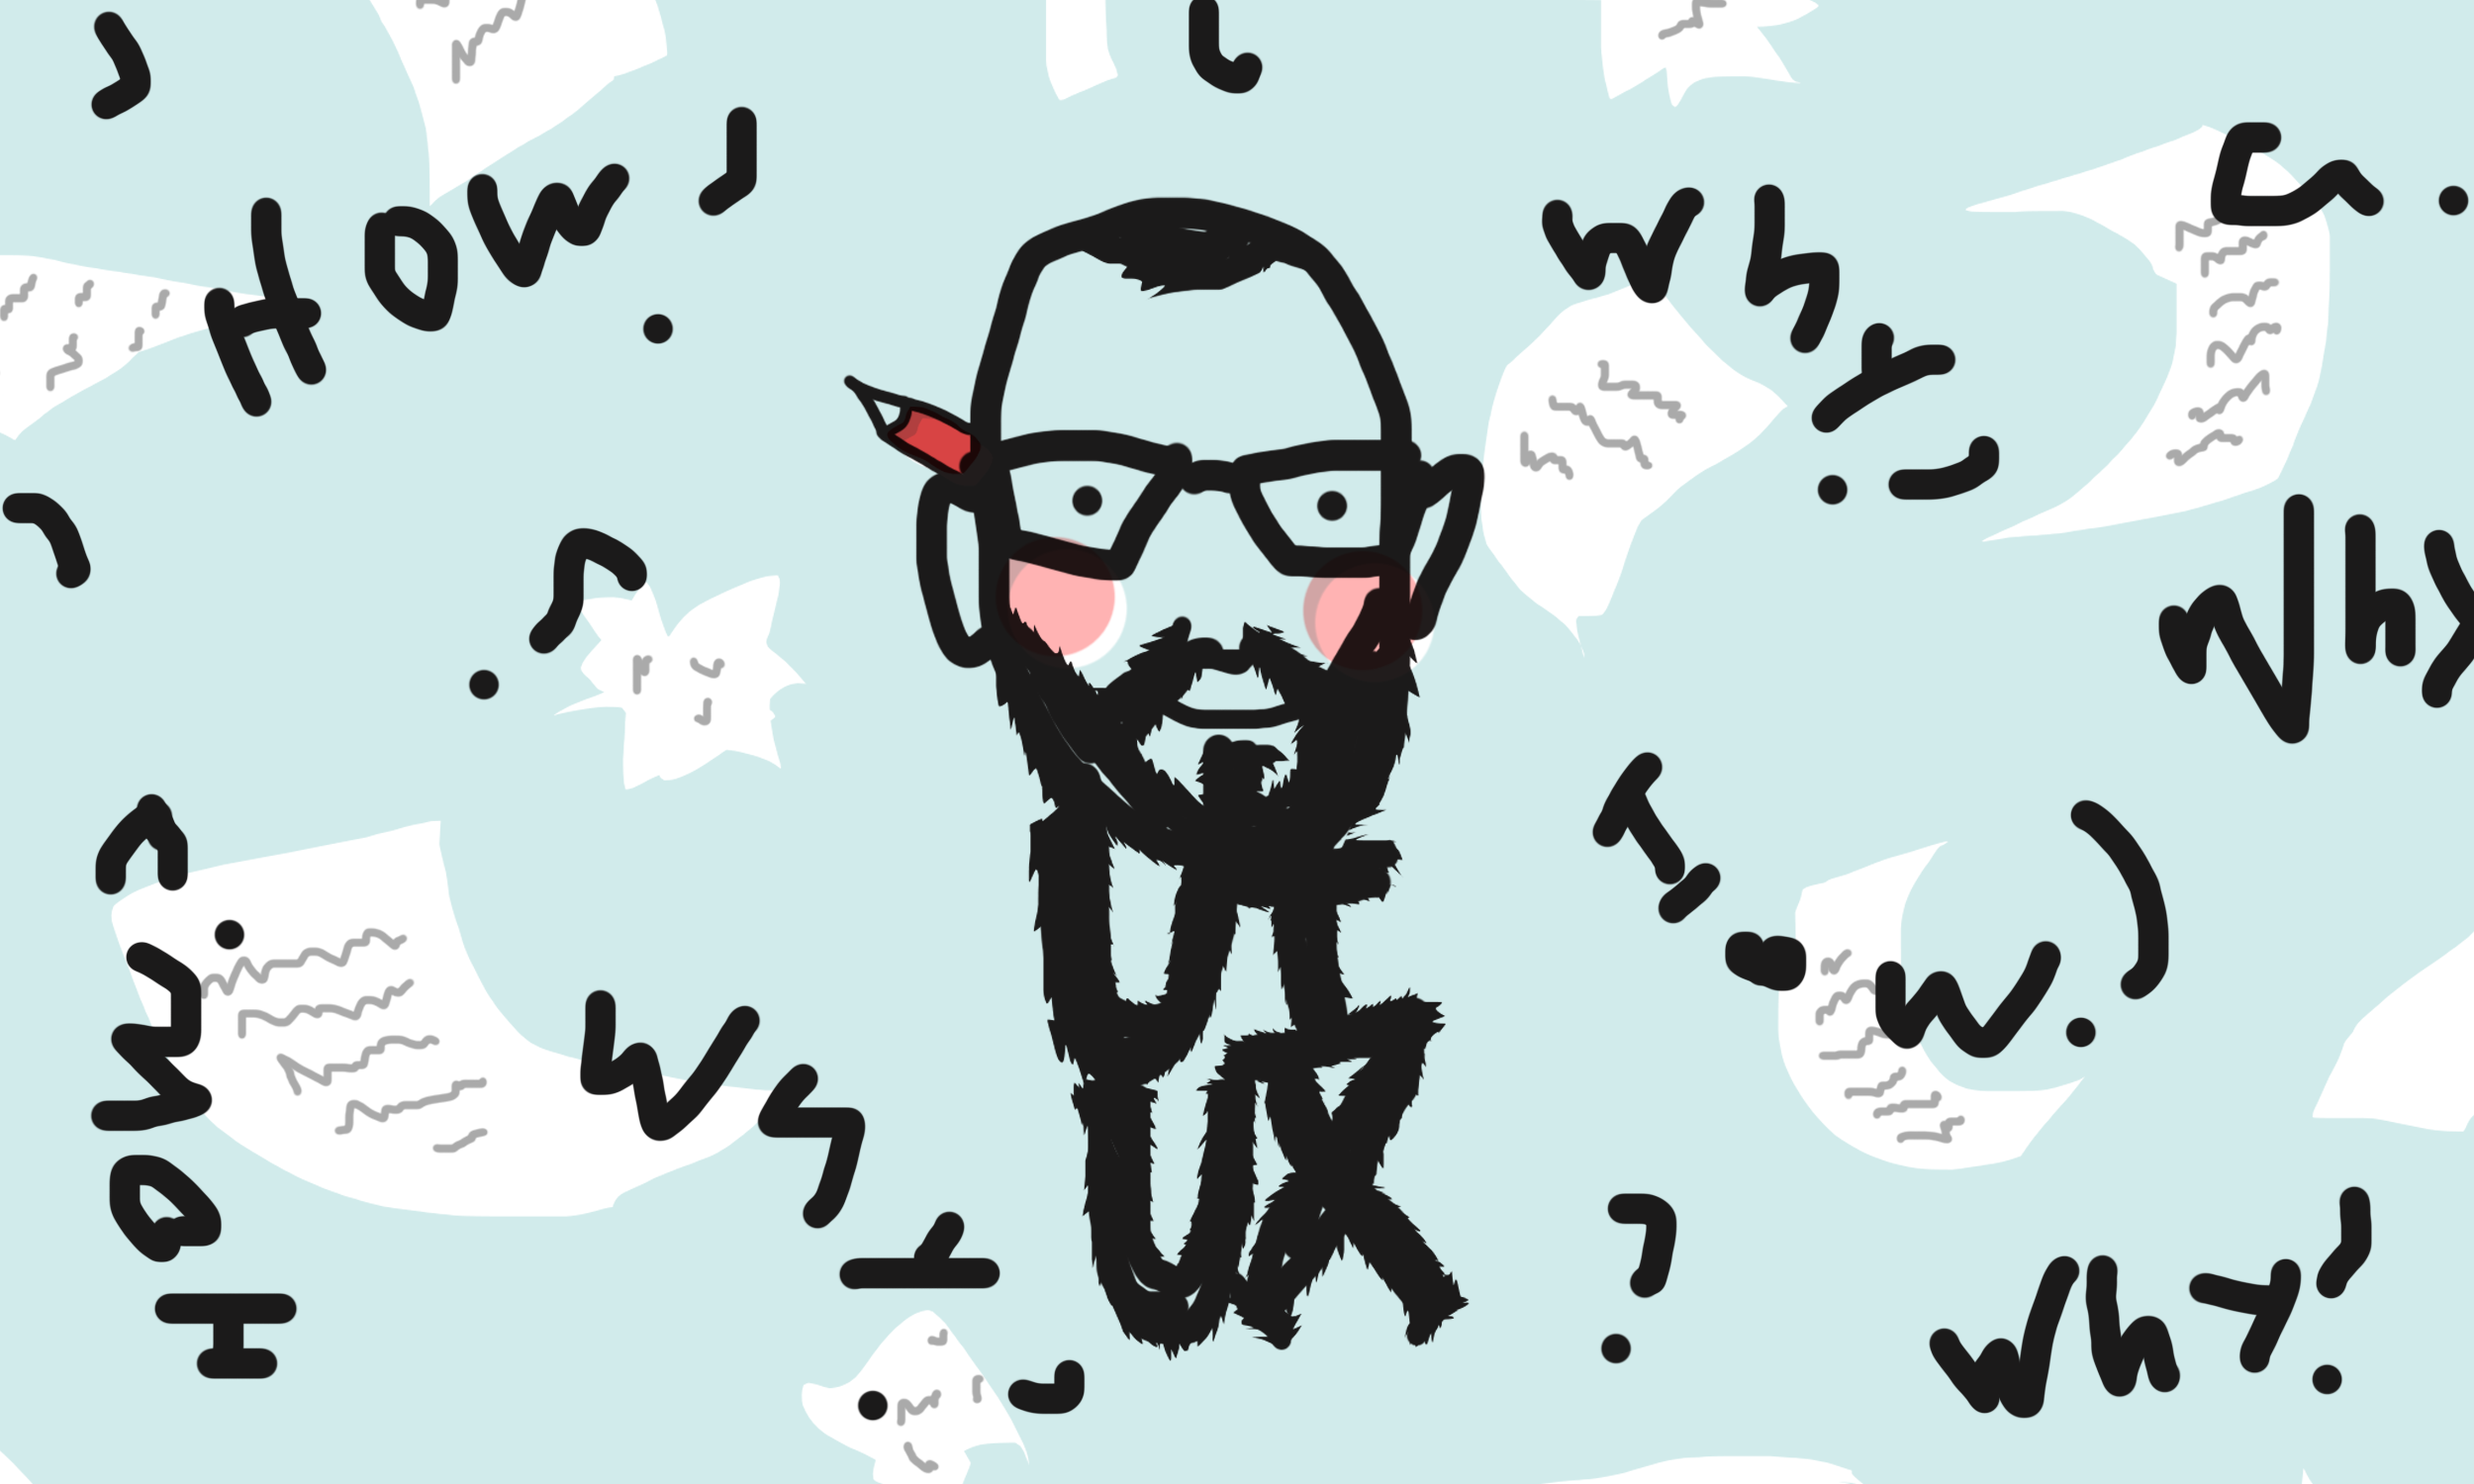 Badly drawn illustration of a floating head with flying papers all around. With a long beard shaped as the letters — UI, UX.